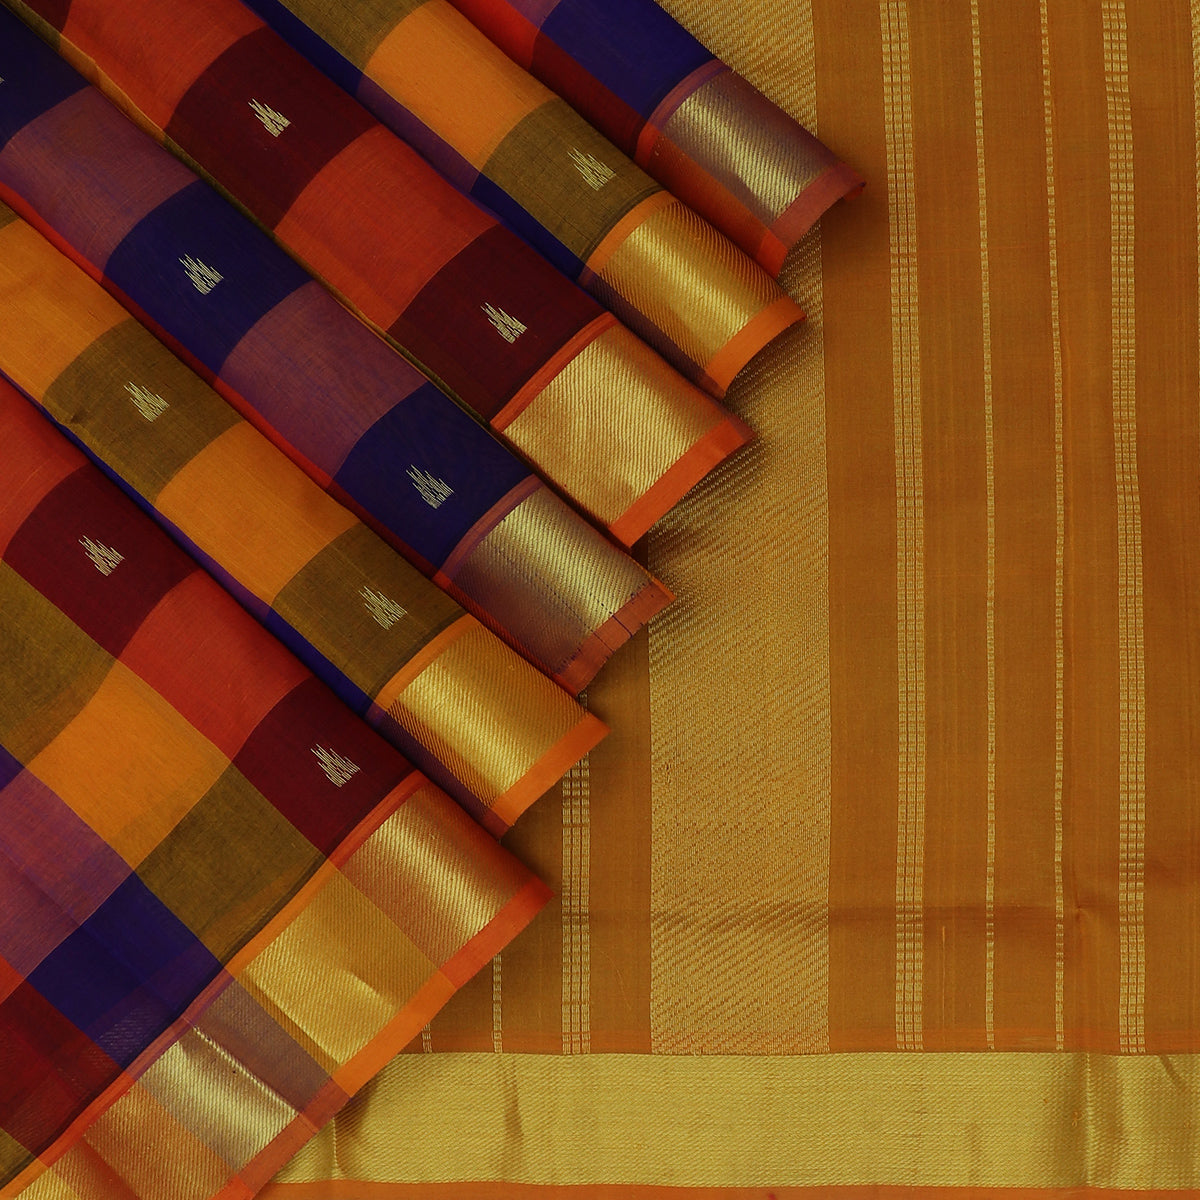 Silk Cotton Saree Multi color with buttas and Paalum Pazham kattam 9 Yards